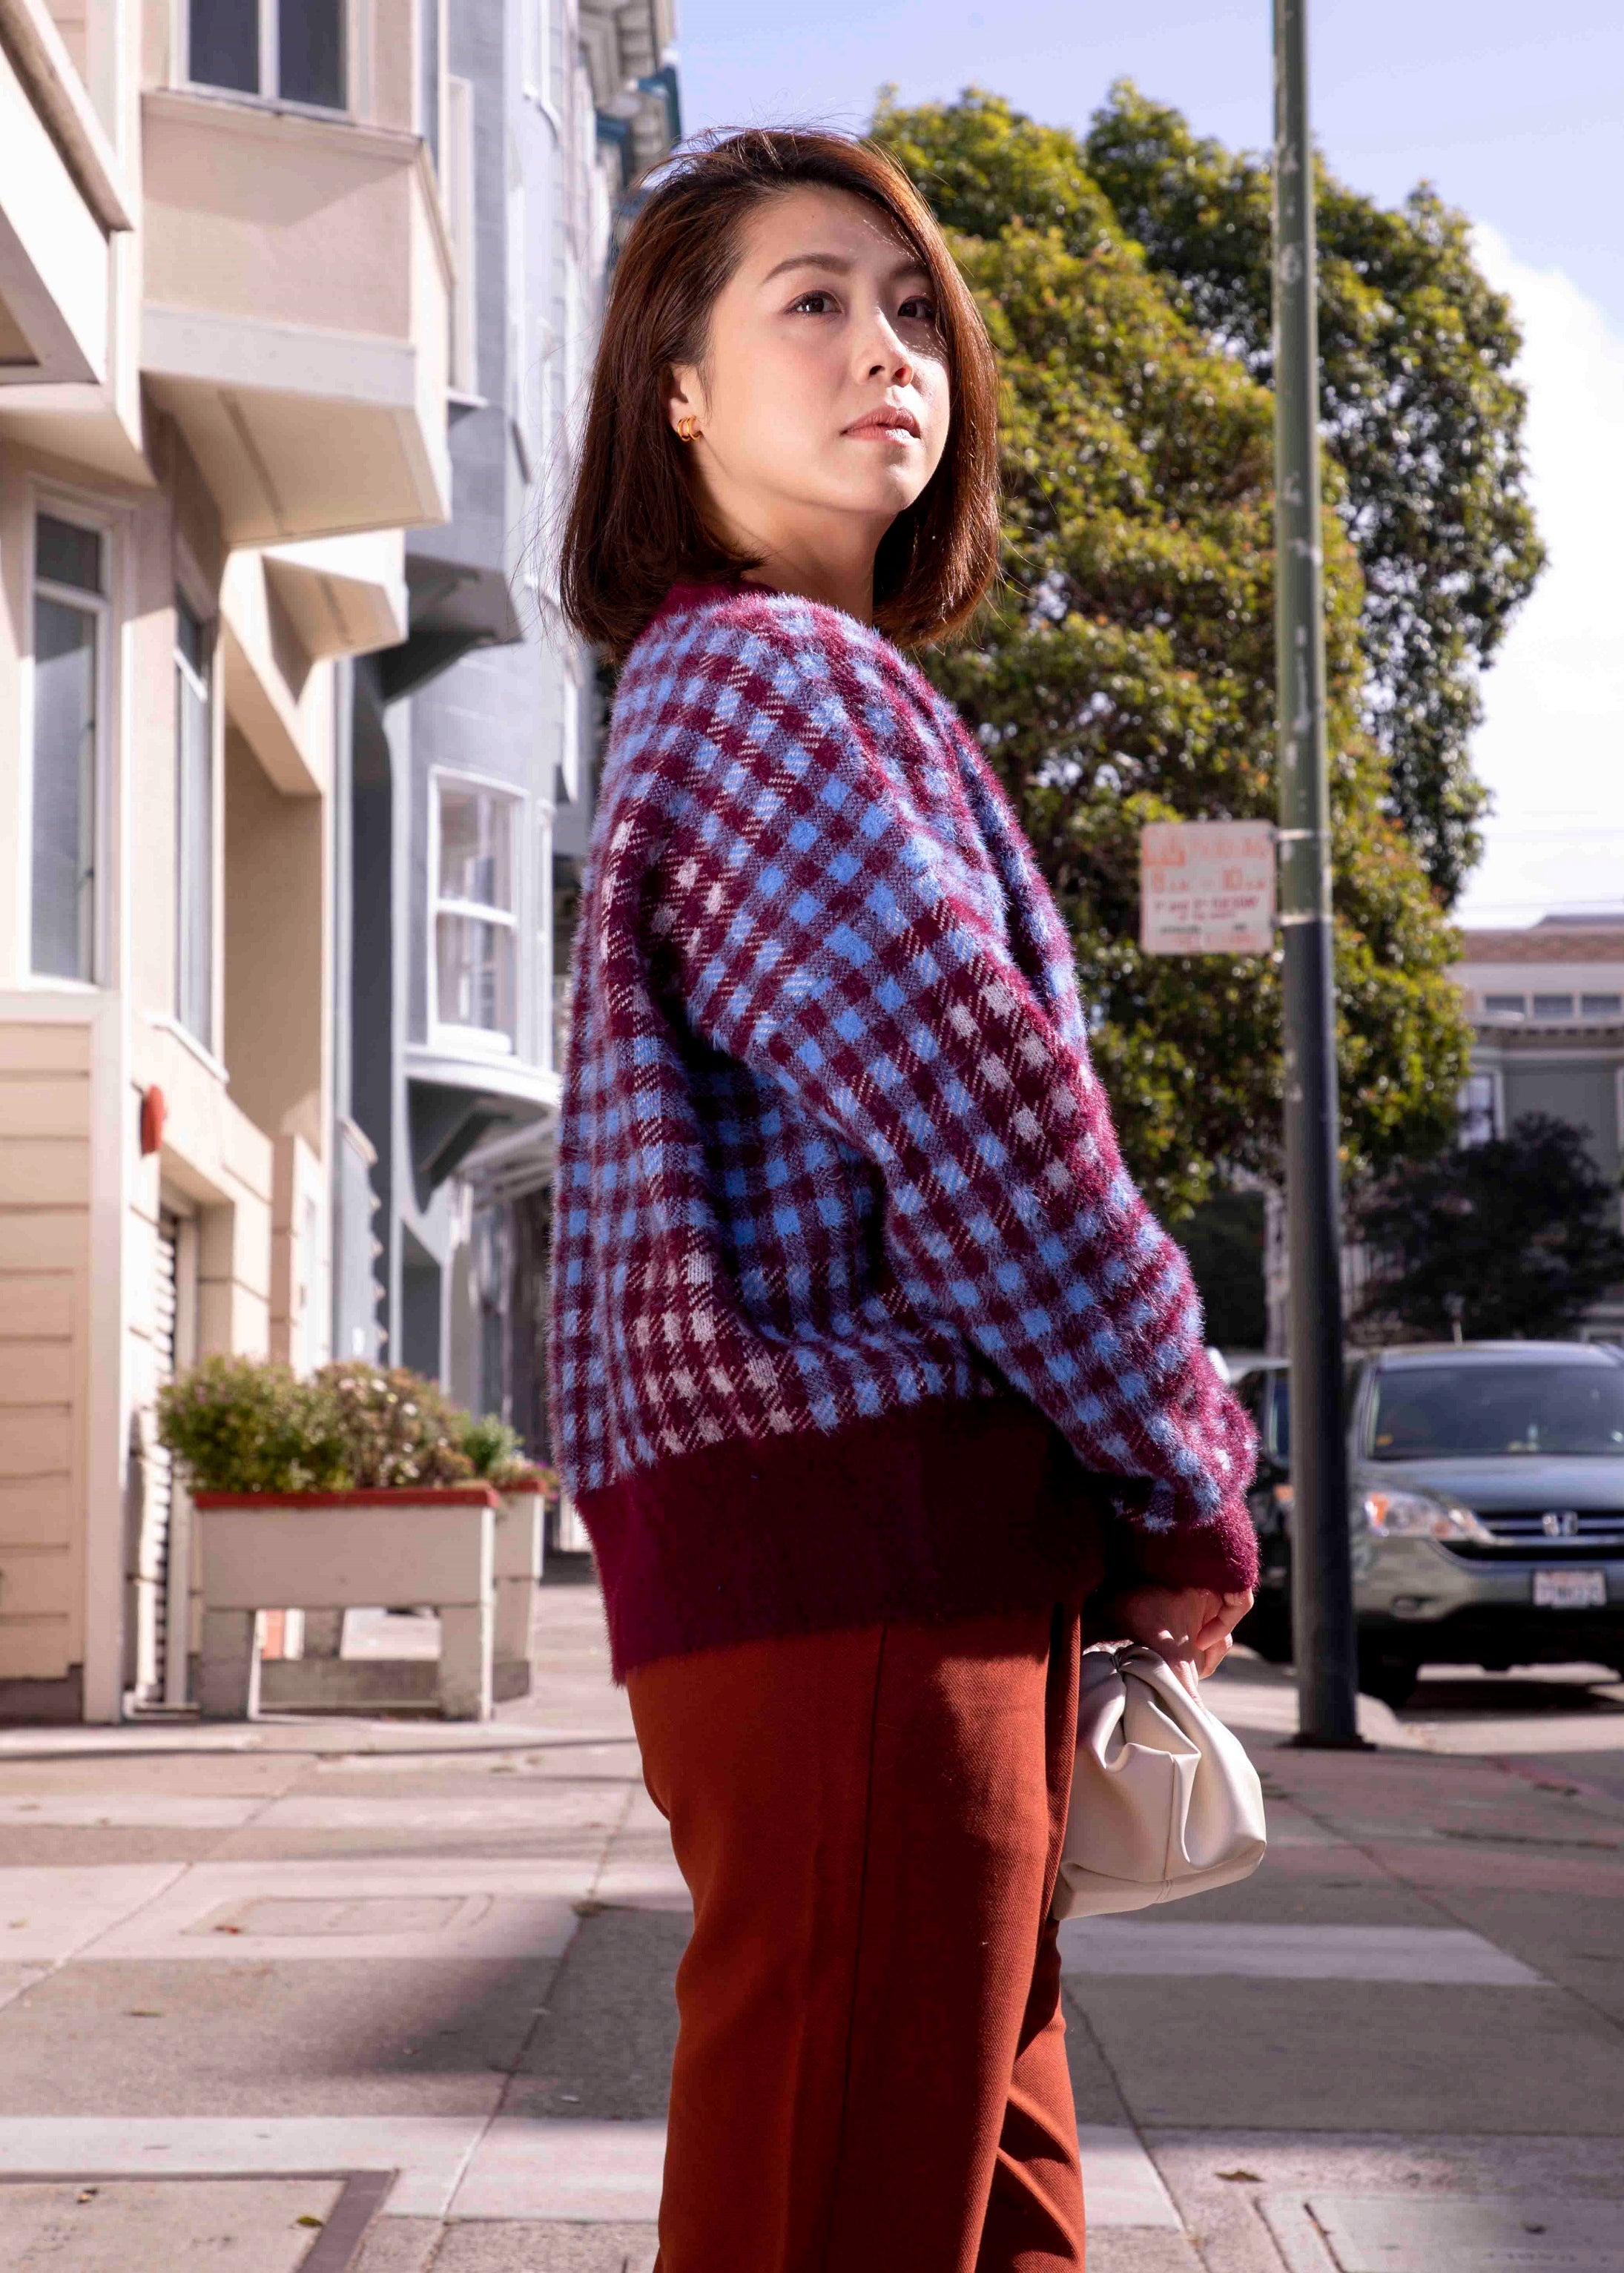 Lorri Check Knit Cardigan-Picnic-sf